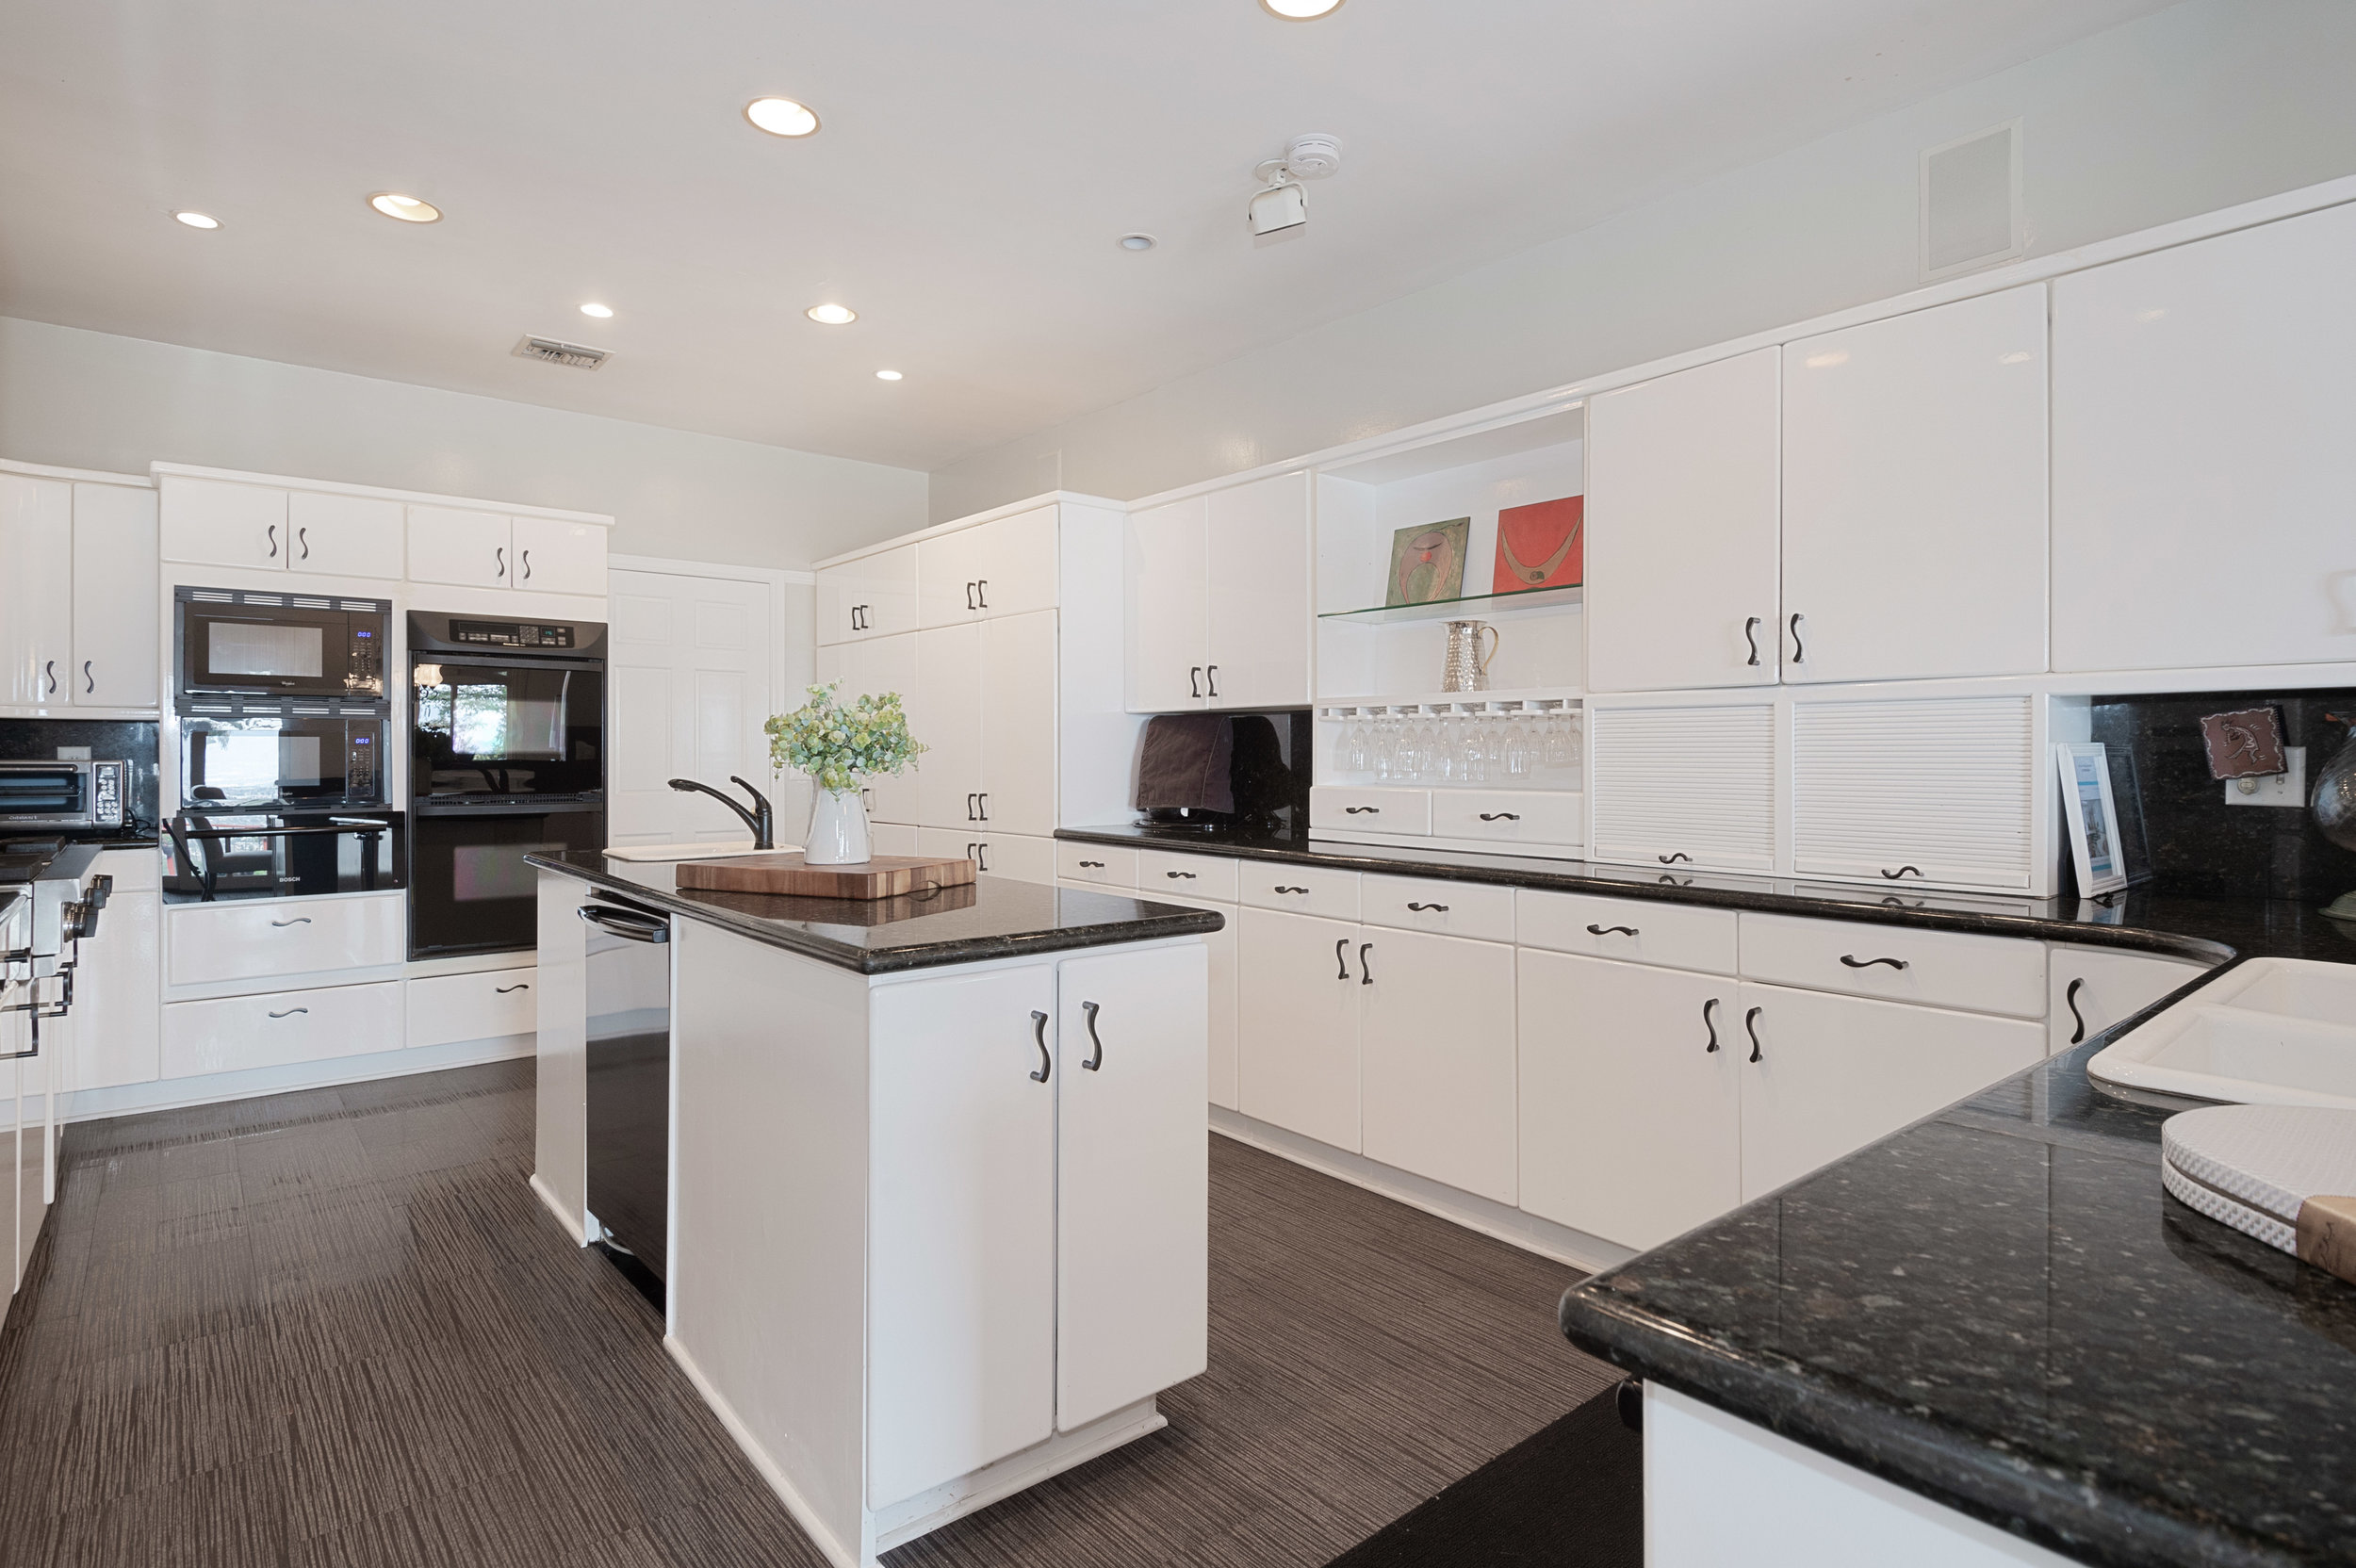 006 Kitchen 12027 Talus Place Beverly Hills 90210 For Sale Lease The Malibu Life Team Luxury Real Estate.jpg